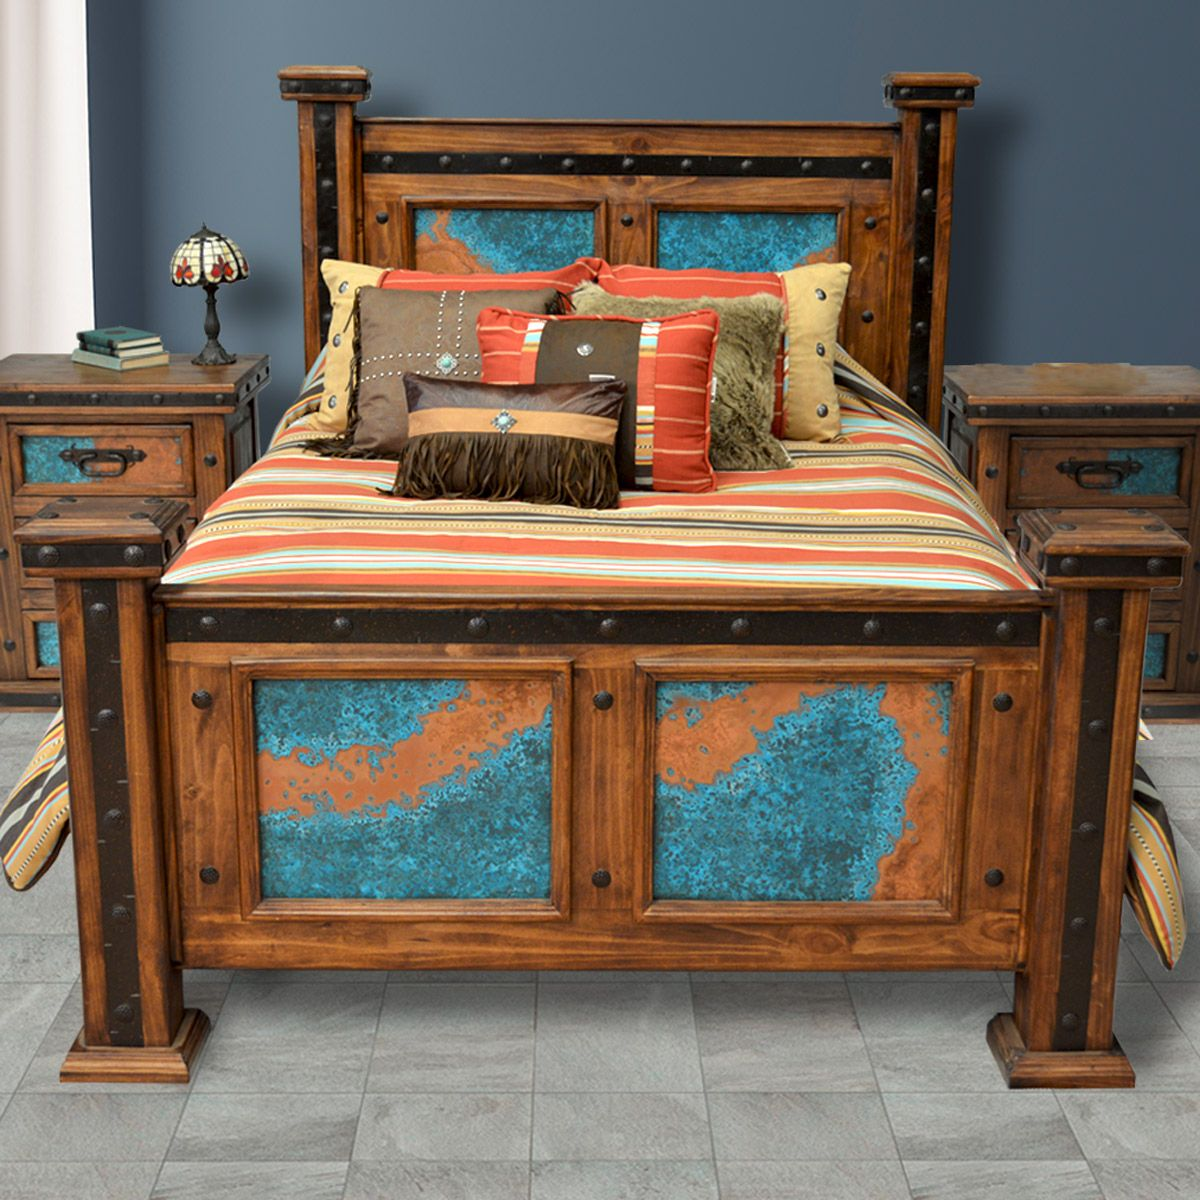 Turquoise Patina Copper Bed - Queen